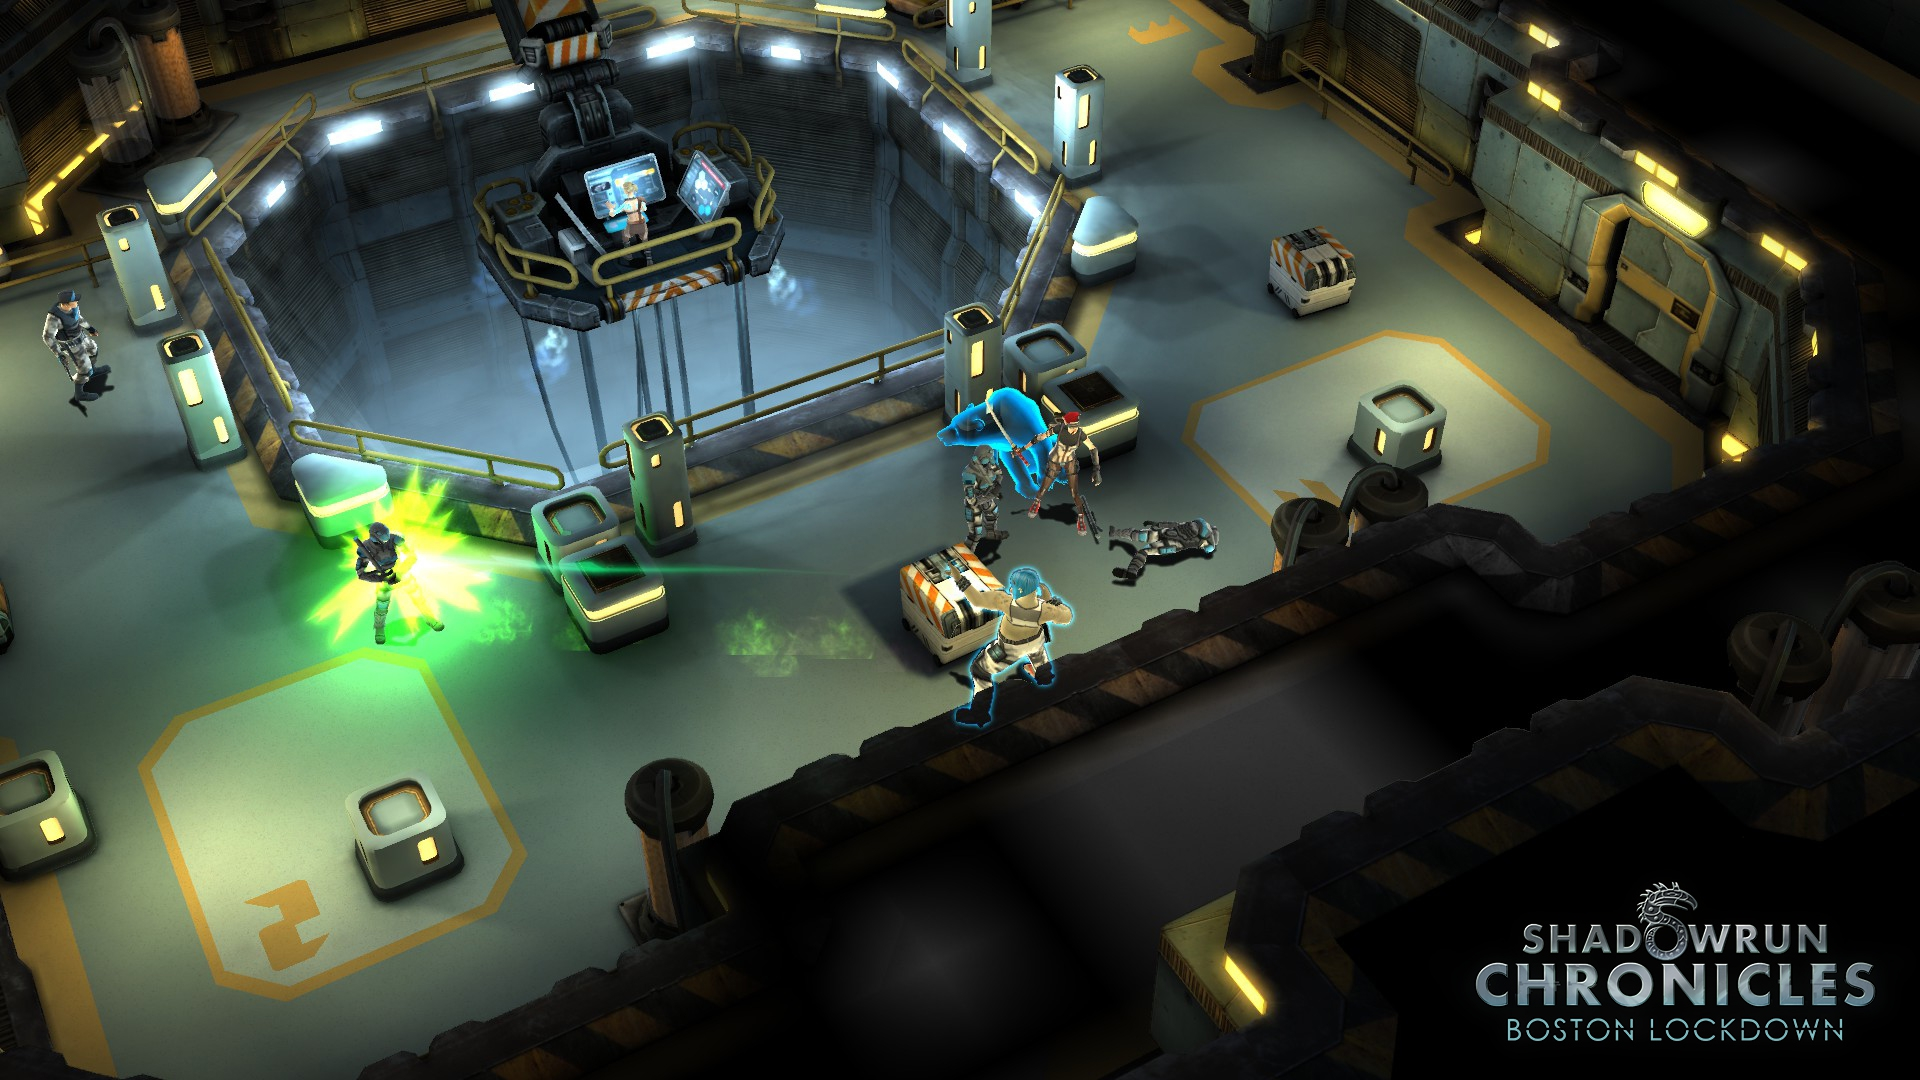 Скриншот - Shadowrun Chronicles - Boston Lockdown (PC)